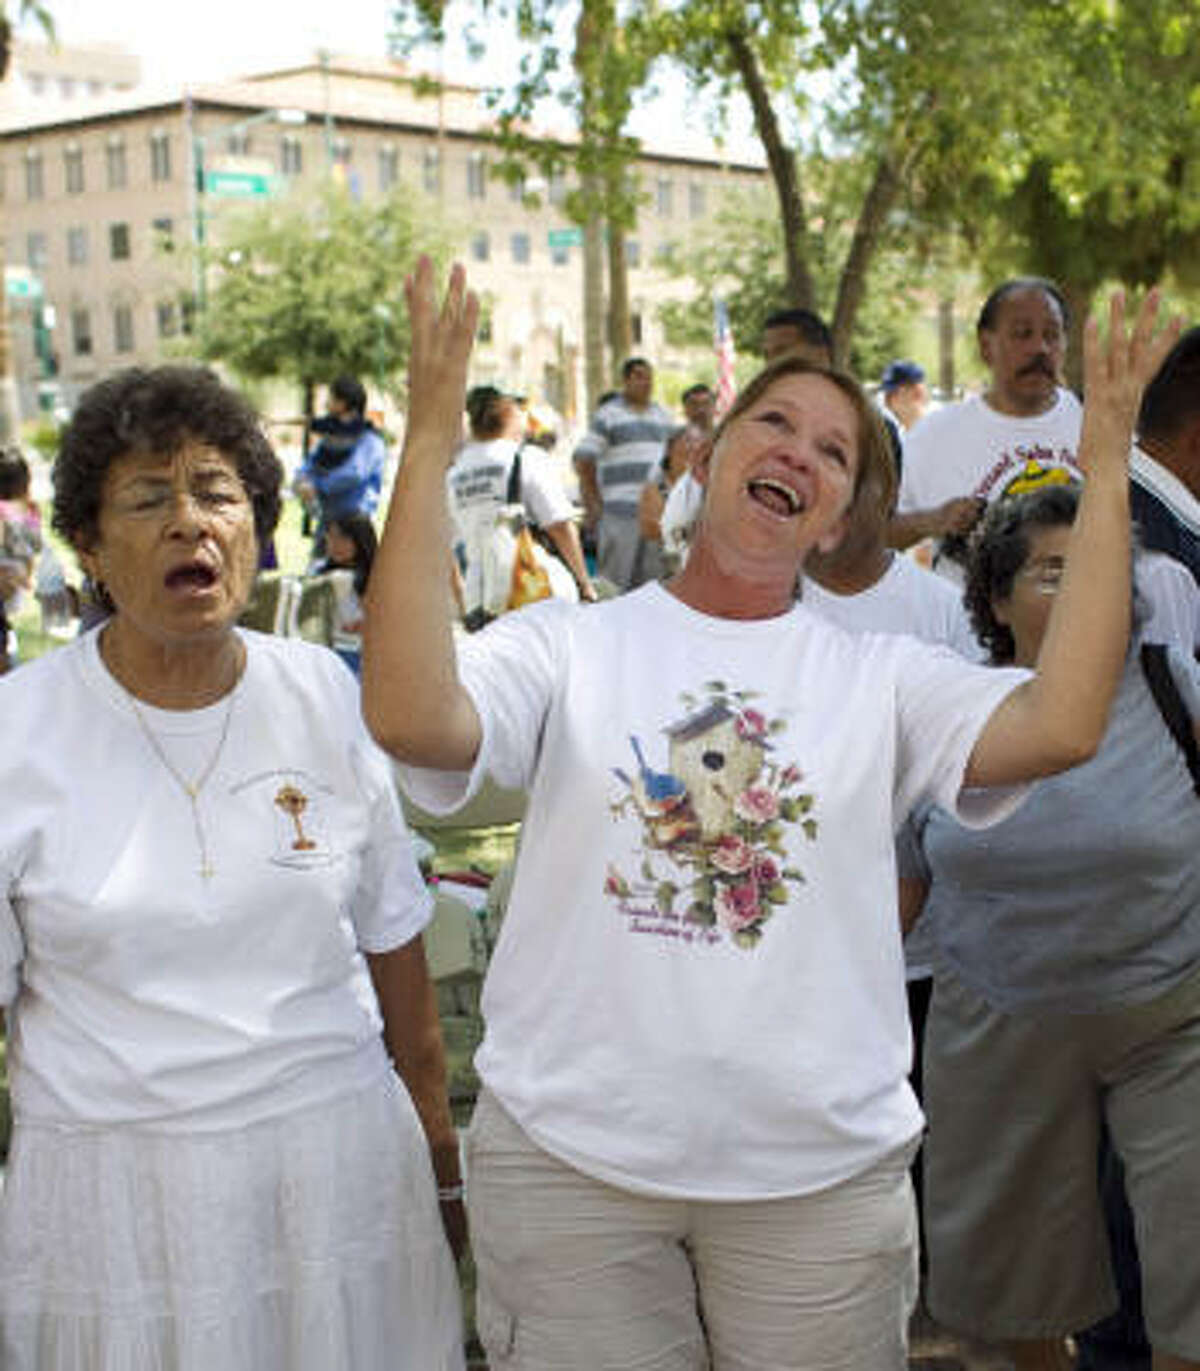 Maria Uribe, center, and other opponents of Bill 1070 rejoice as they hear the news of the ruling.